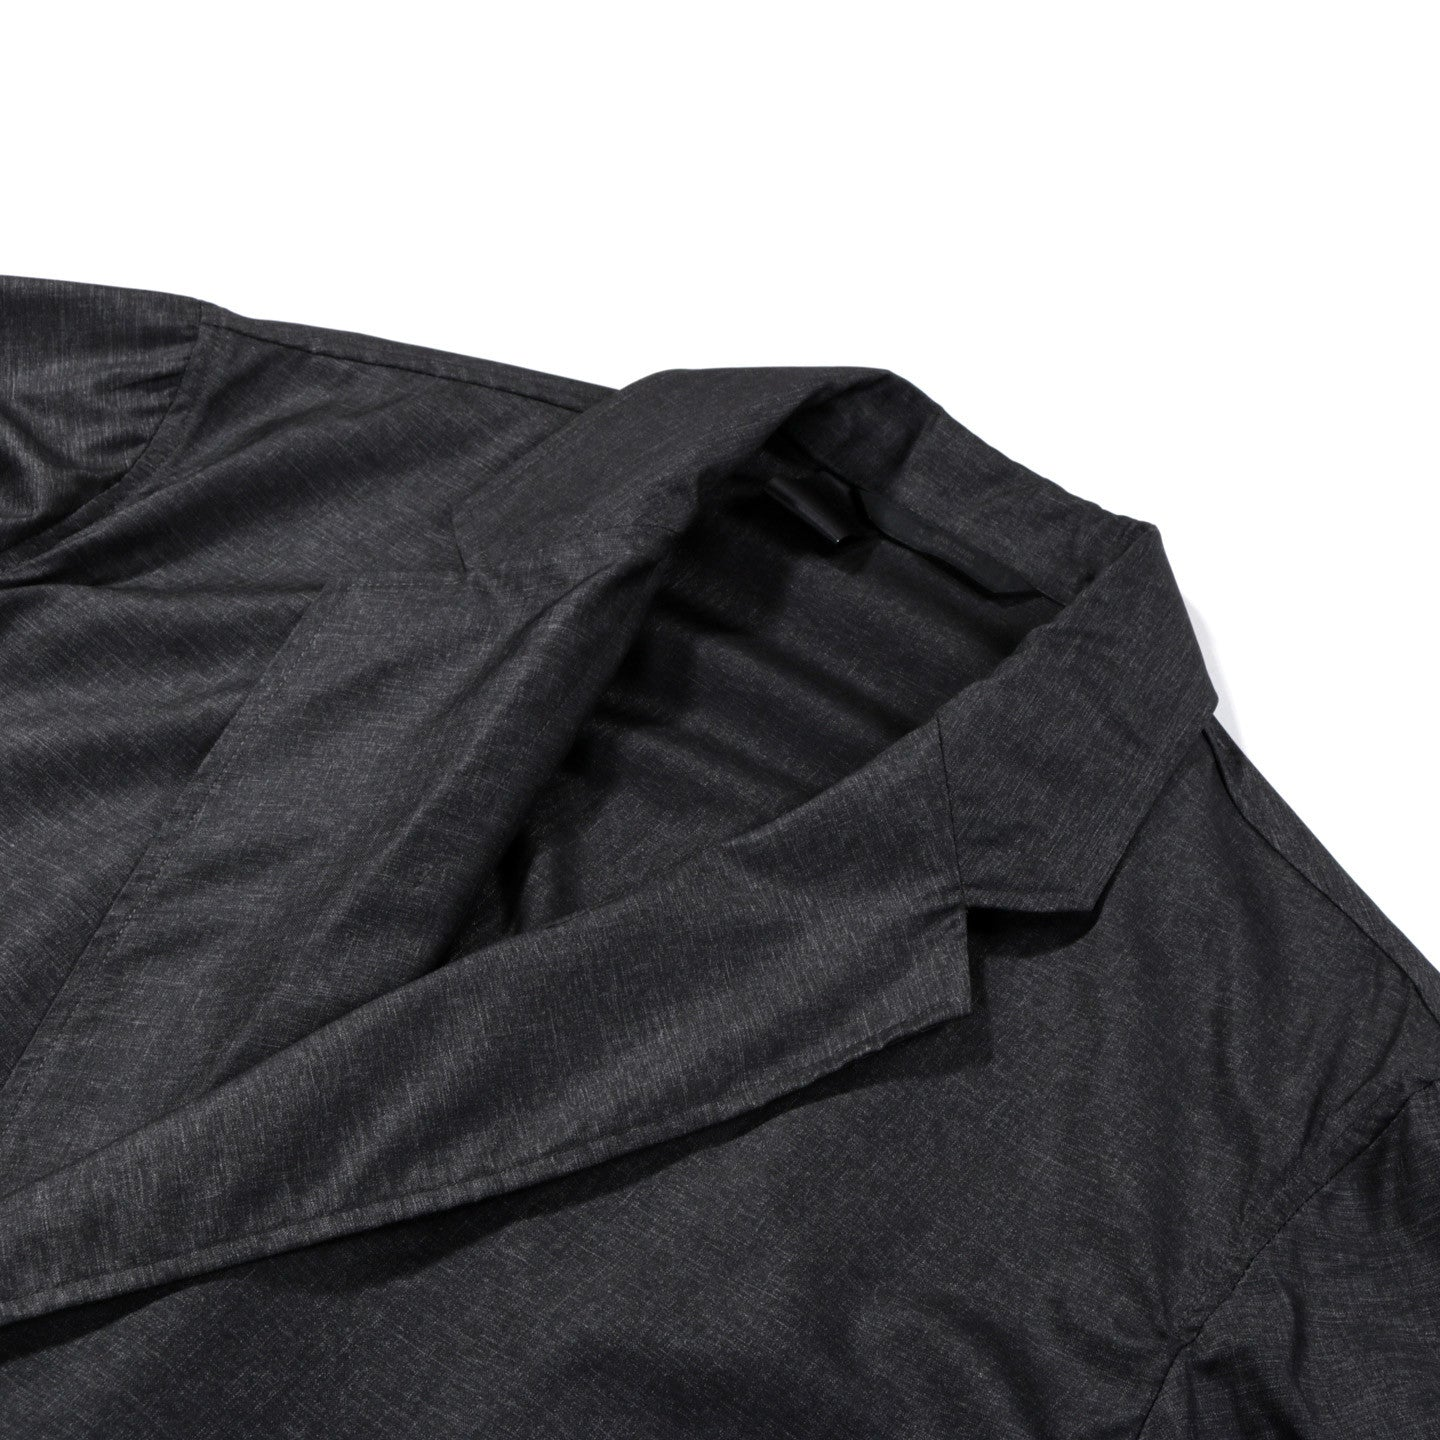 N.HOOLYWOOD 271-CO04 DB COAT CHARCOAL